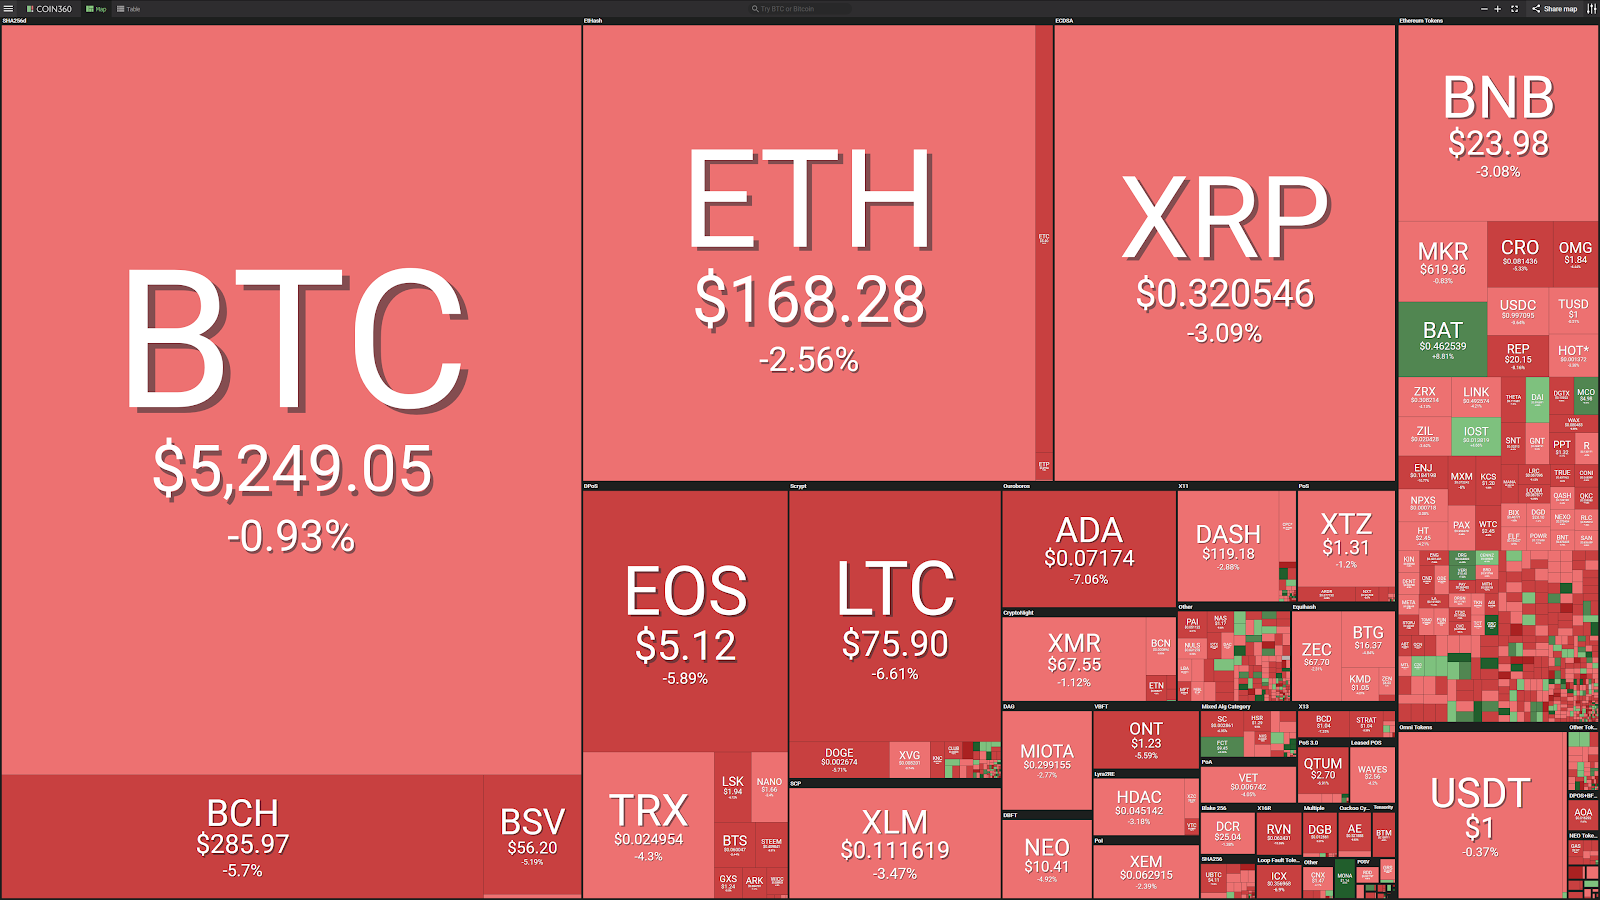 Market visualization courtesy of Coin360